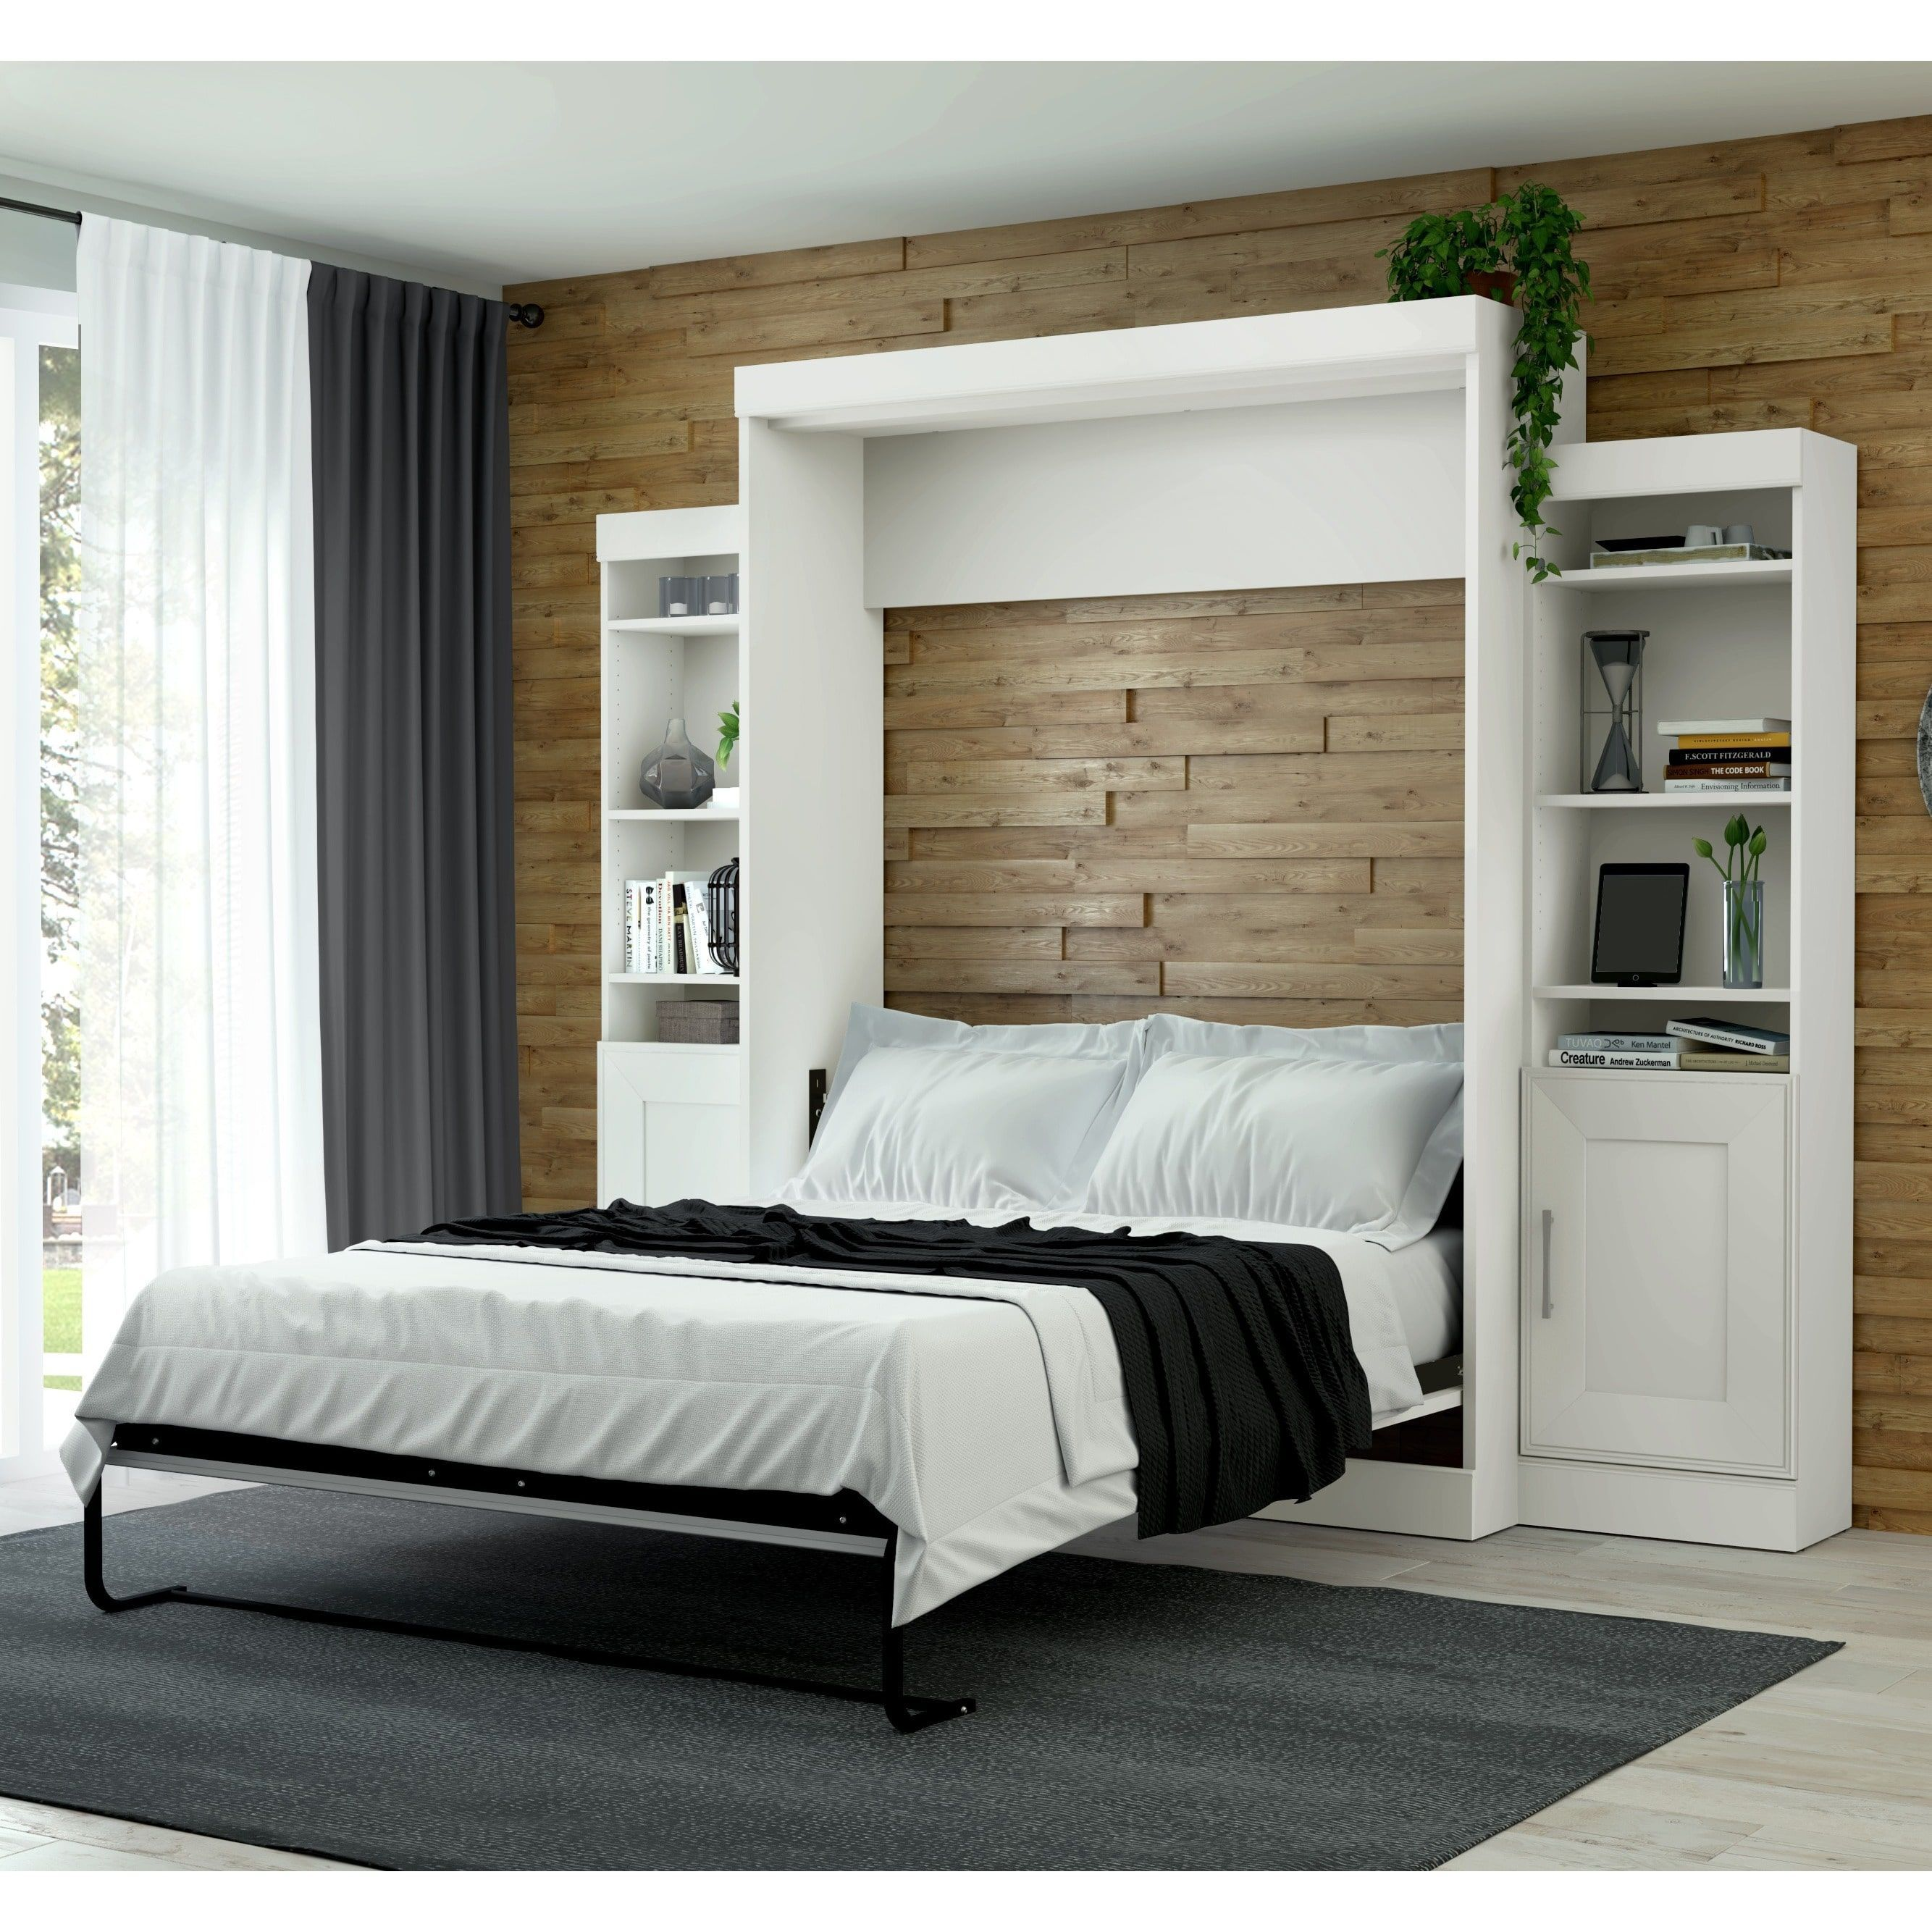 Best Edge By Bestar Queen Wall Bed With Two 21 Inch Storage 400 x 300